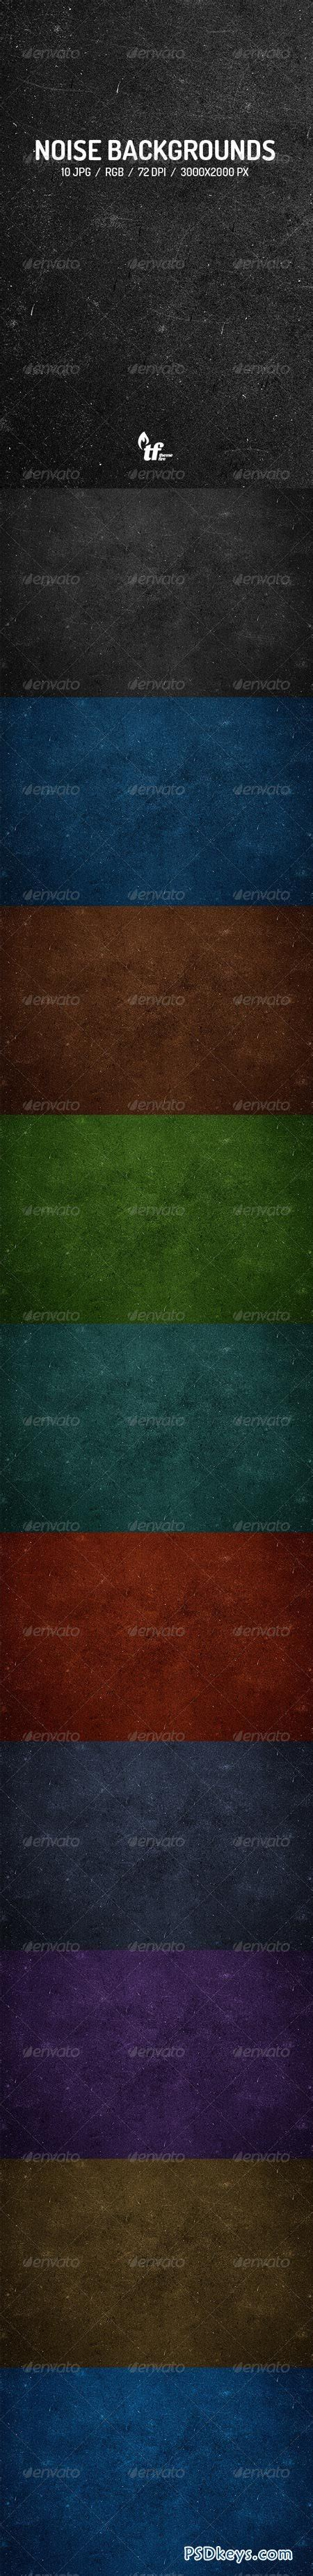 noise backgrounds    photoshop vector